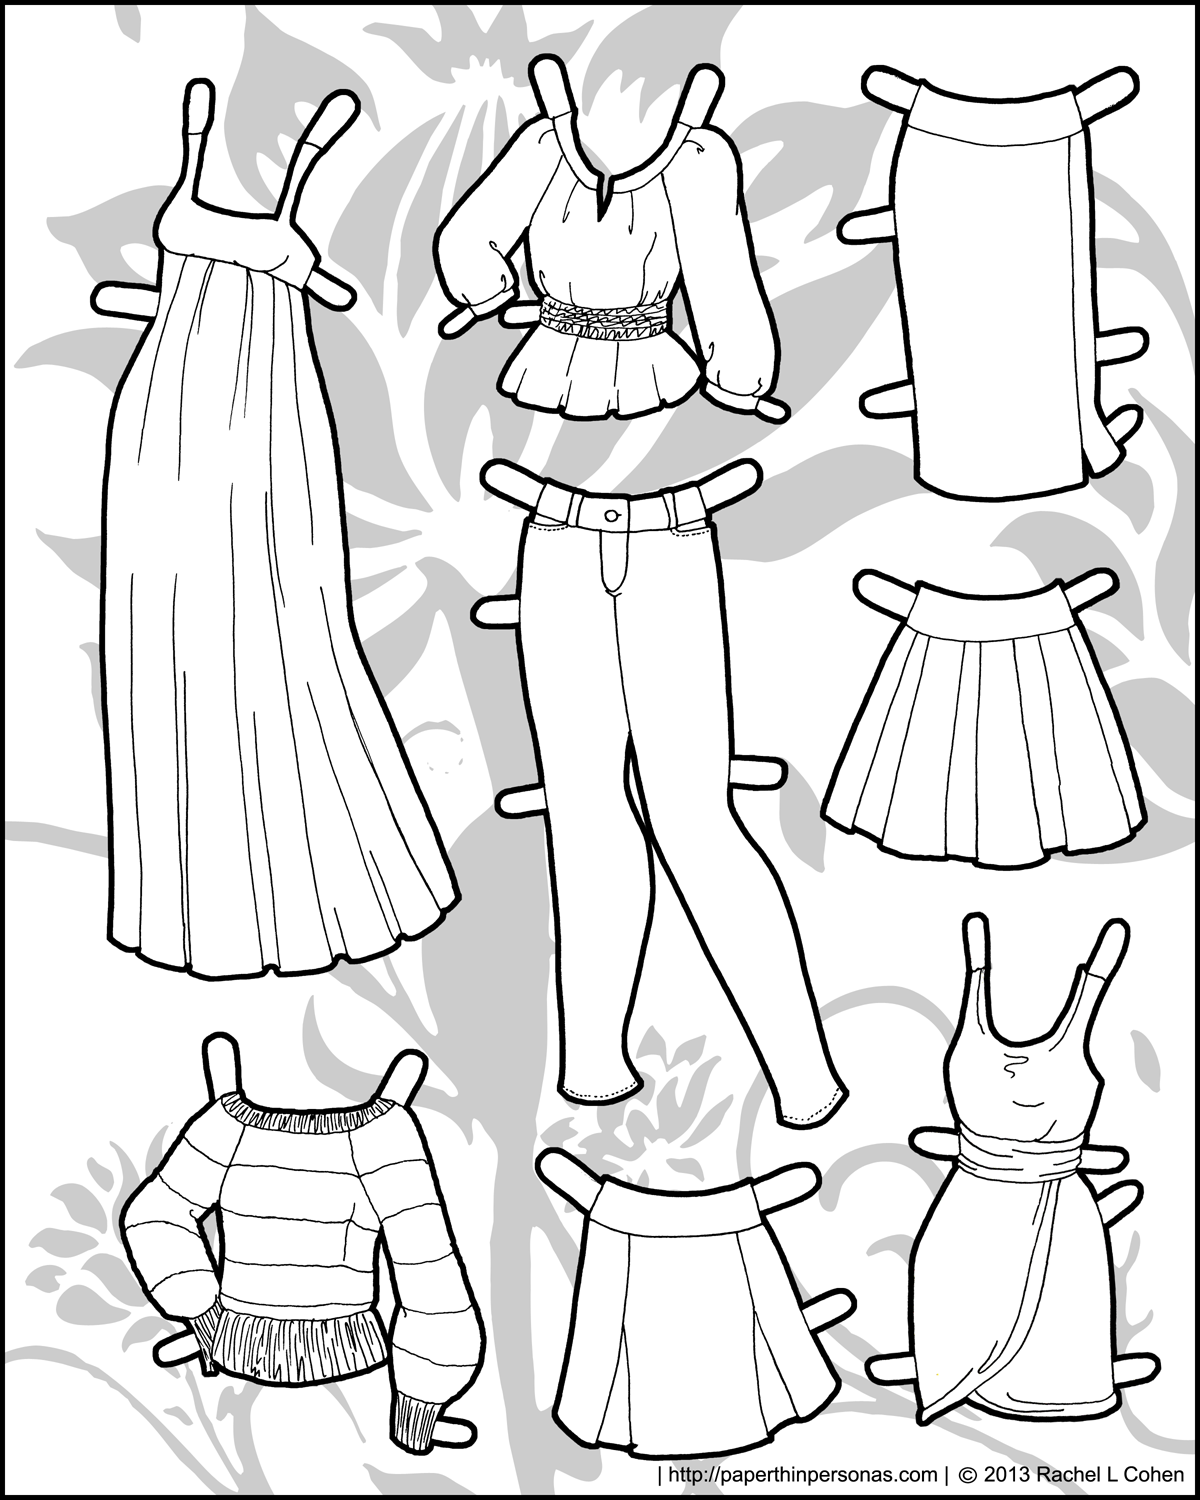 full color printable paper doll clothes for Ms Mannequin paper doll series